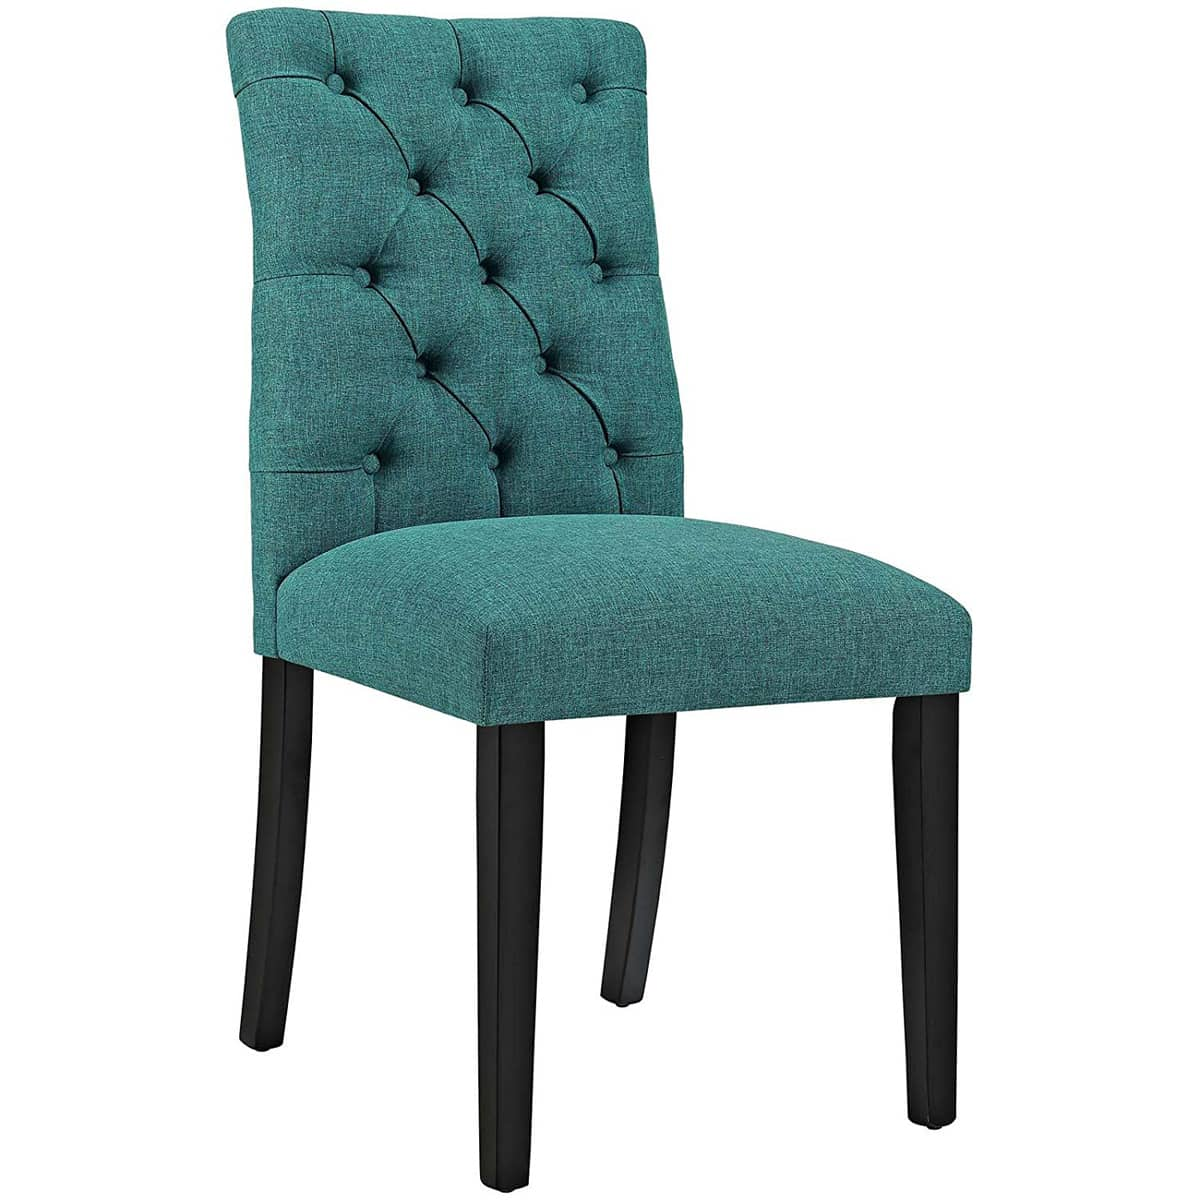 The Most Beautiful Kitchen Chairs You Can Buy on Amazon for $100 or Less: gallery image 6